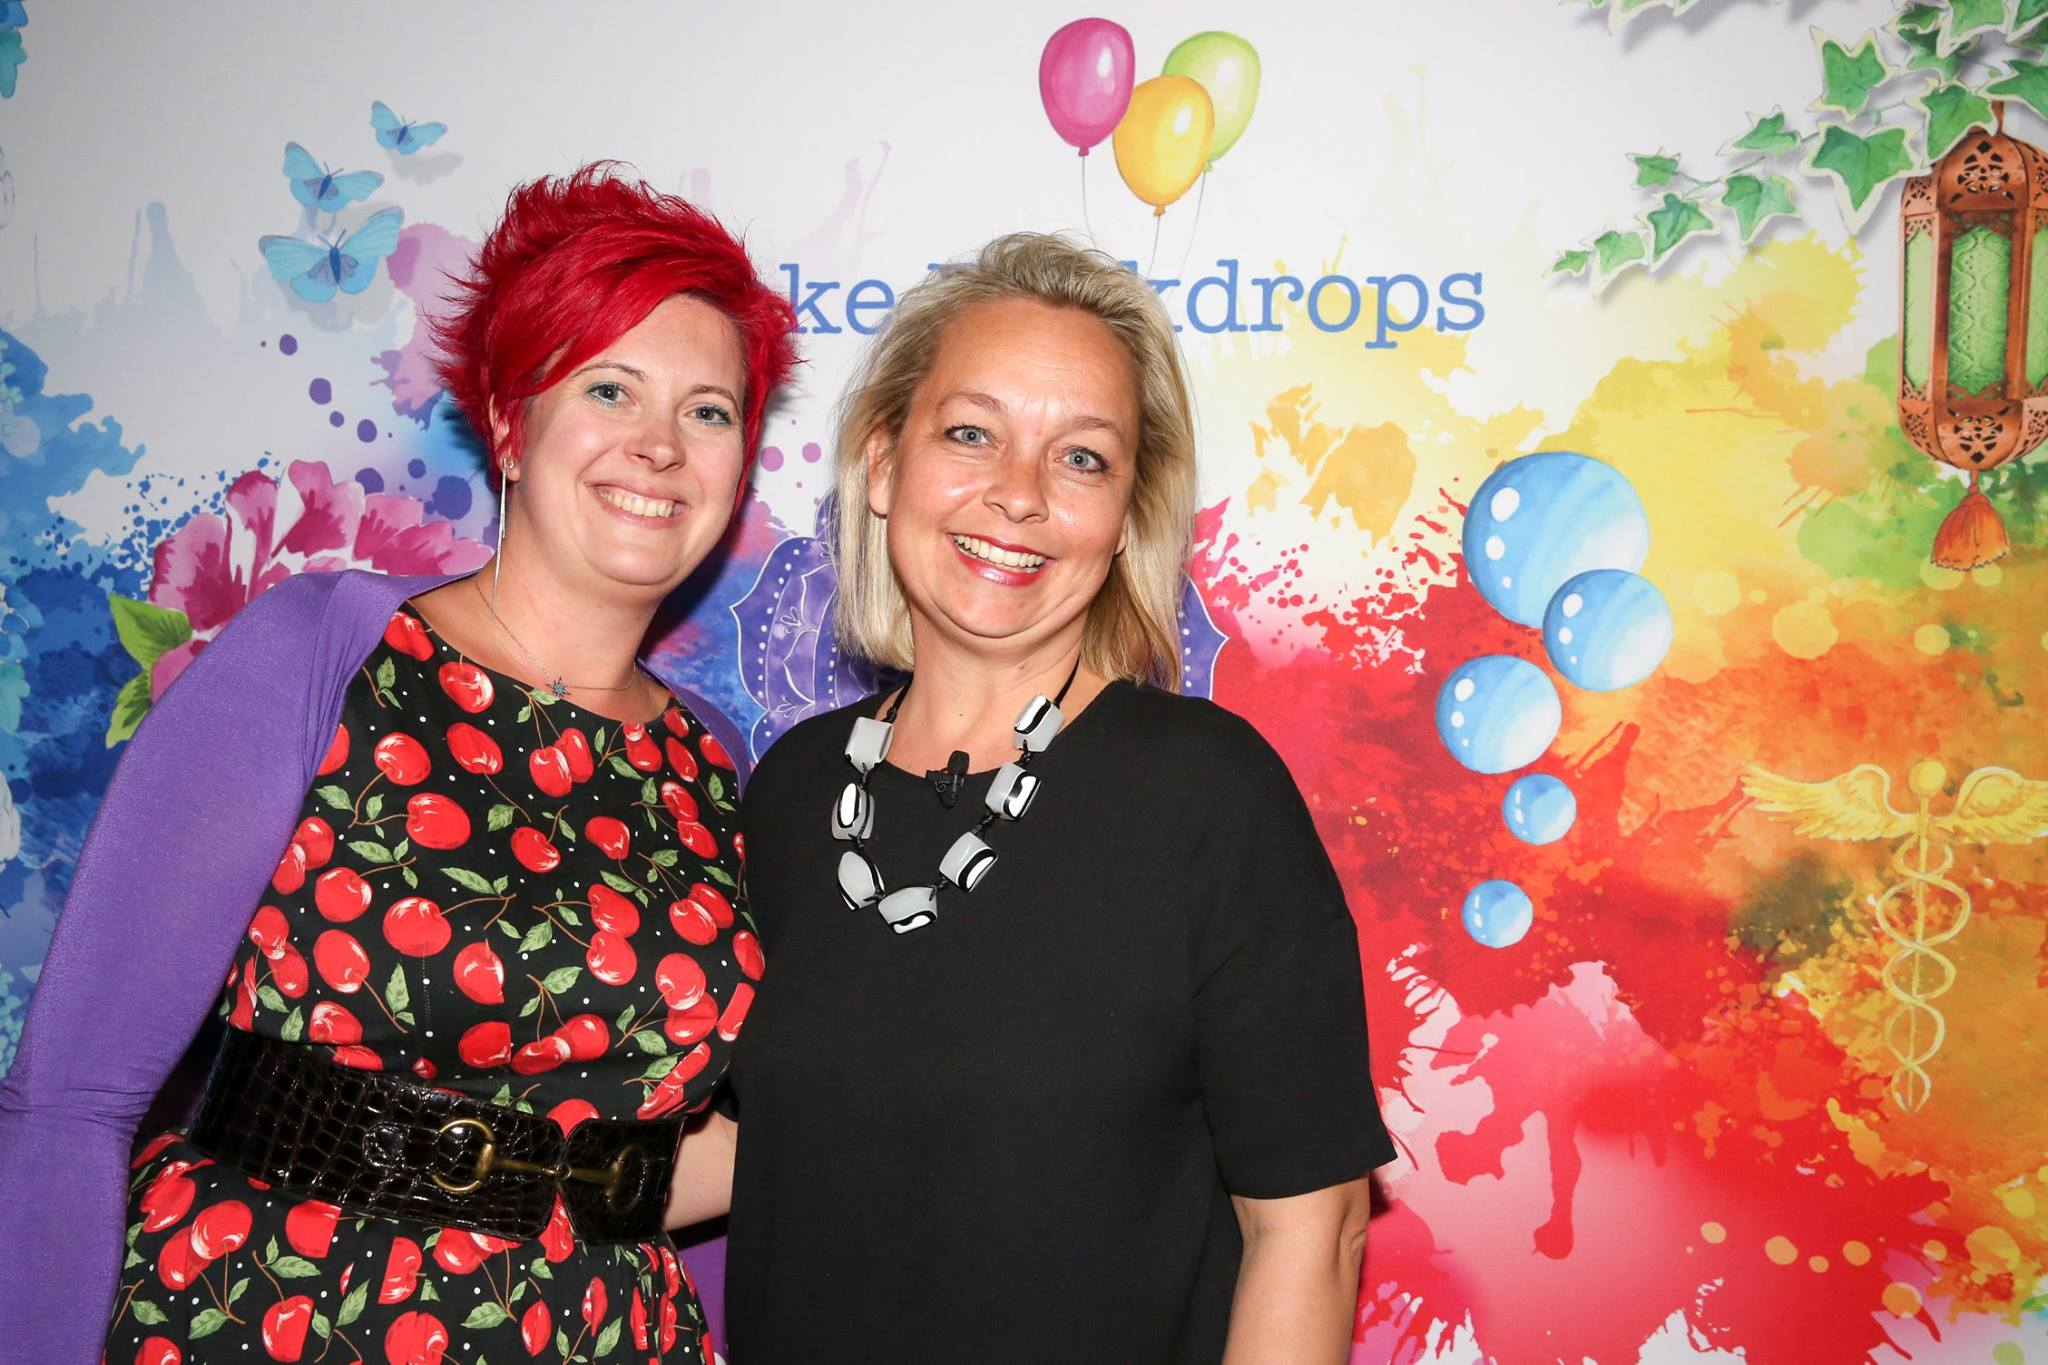 Our fabulous featured evening presenter, Emma Veiga-Malta, artist & founder Bespoke Backdrops, who shared her epic story, 'A Creative Journey - From Fabulous to Fear & Back Again'